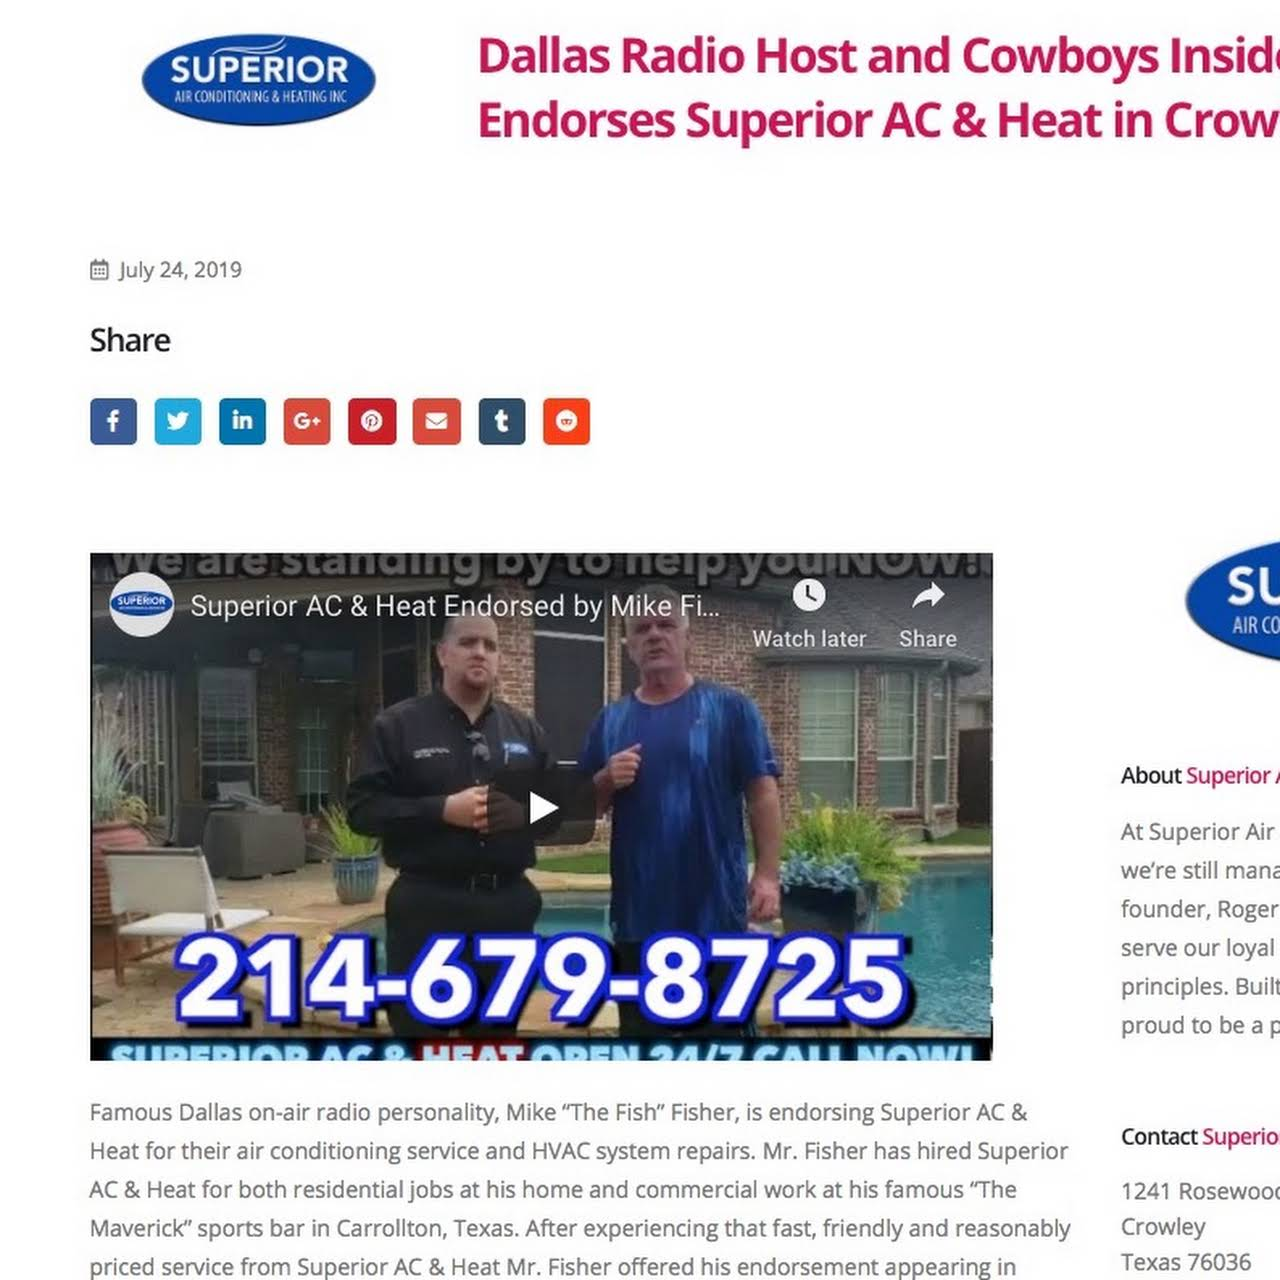 Dallas Radio Host and Cowboys Insider Mike Fisher Endorses